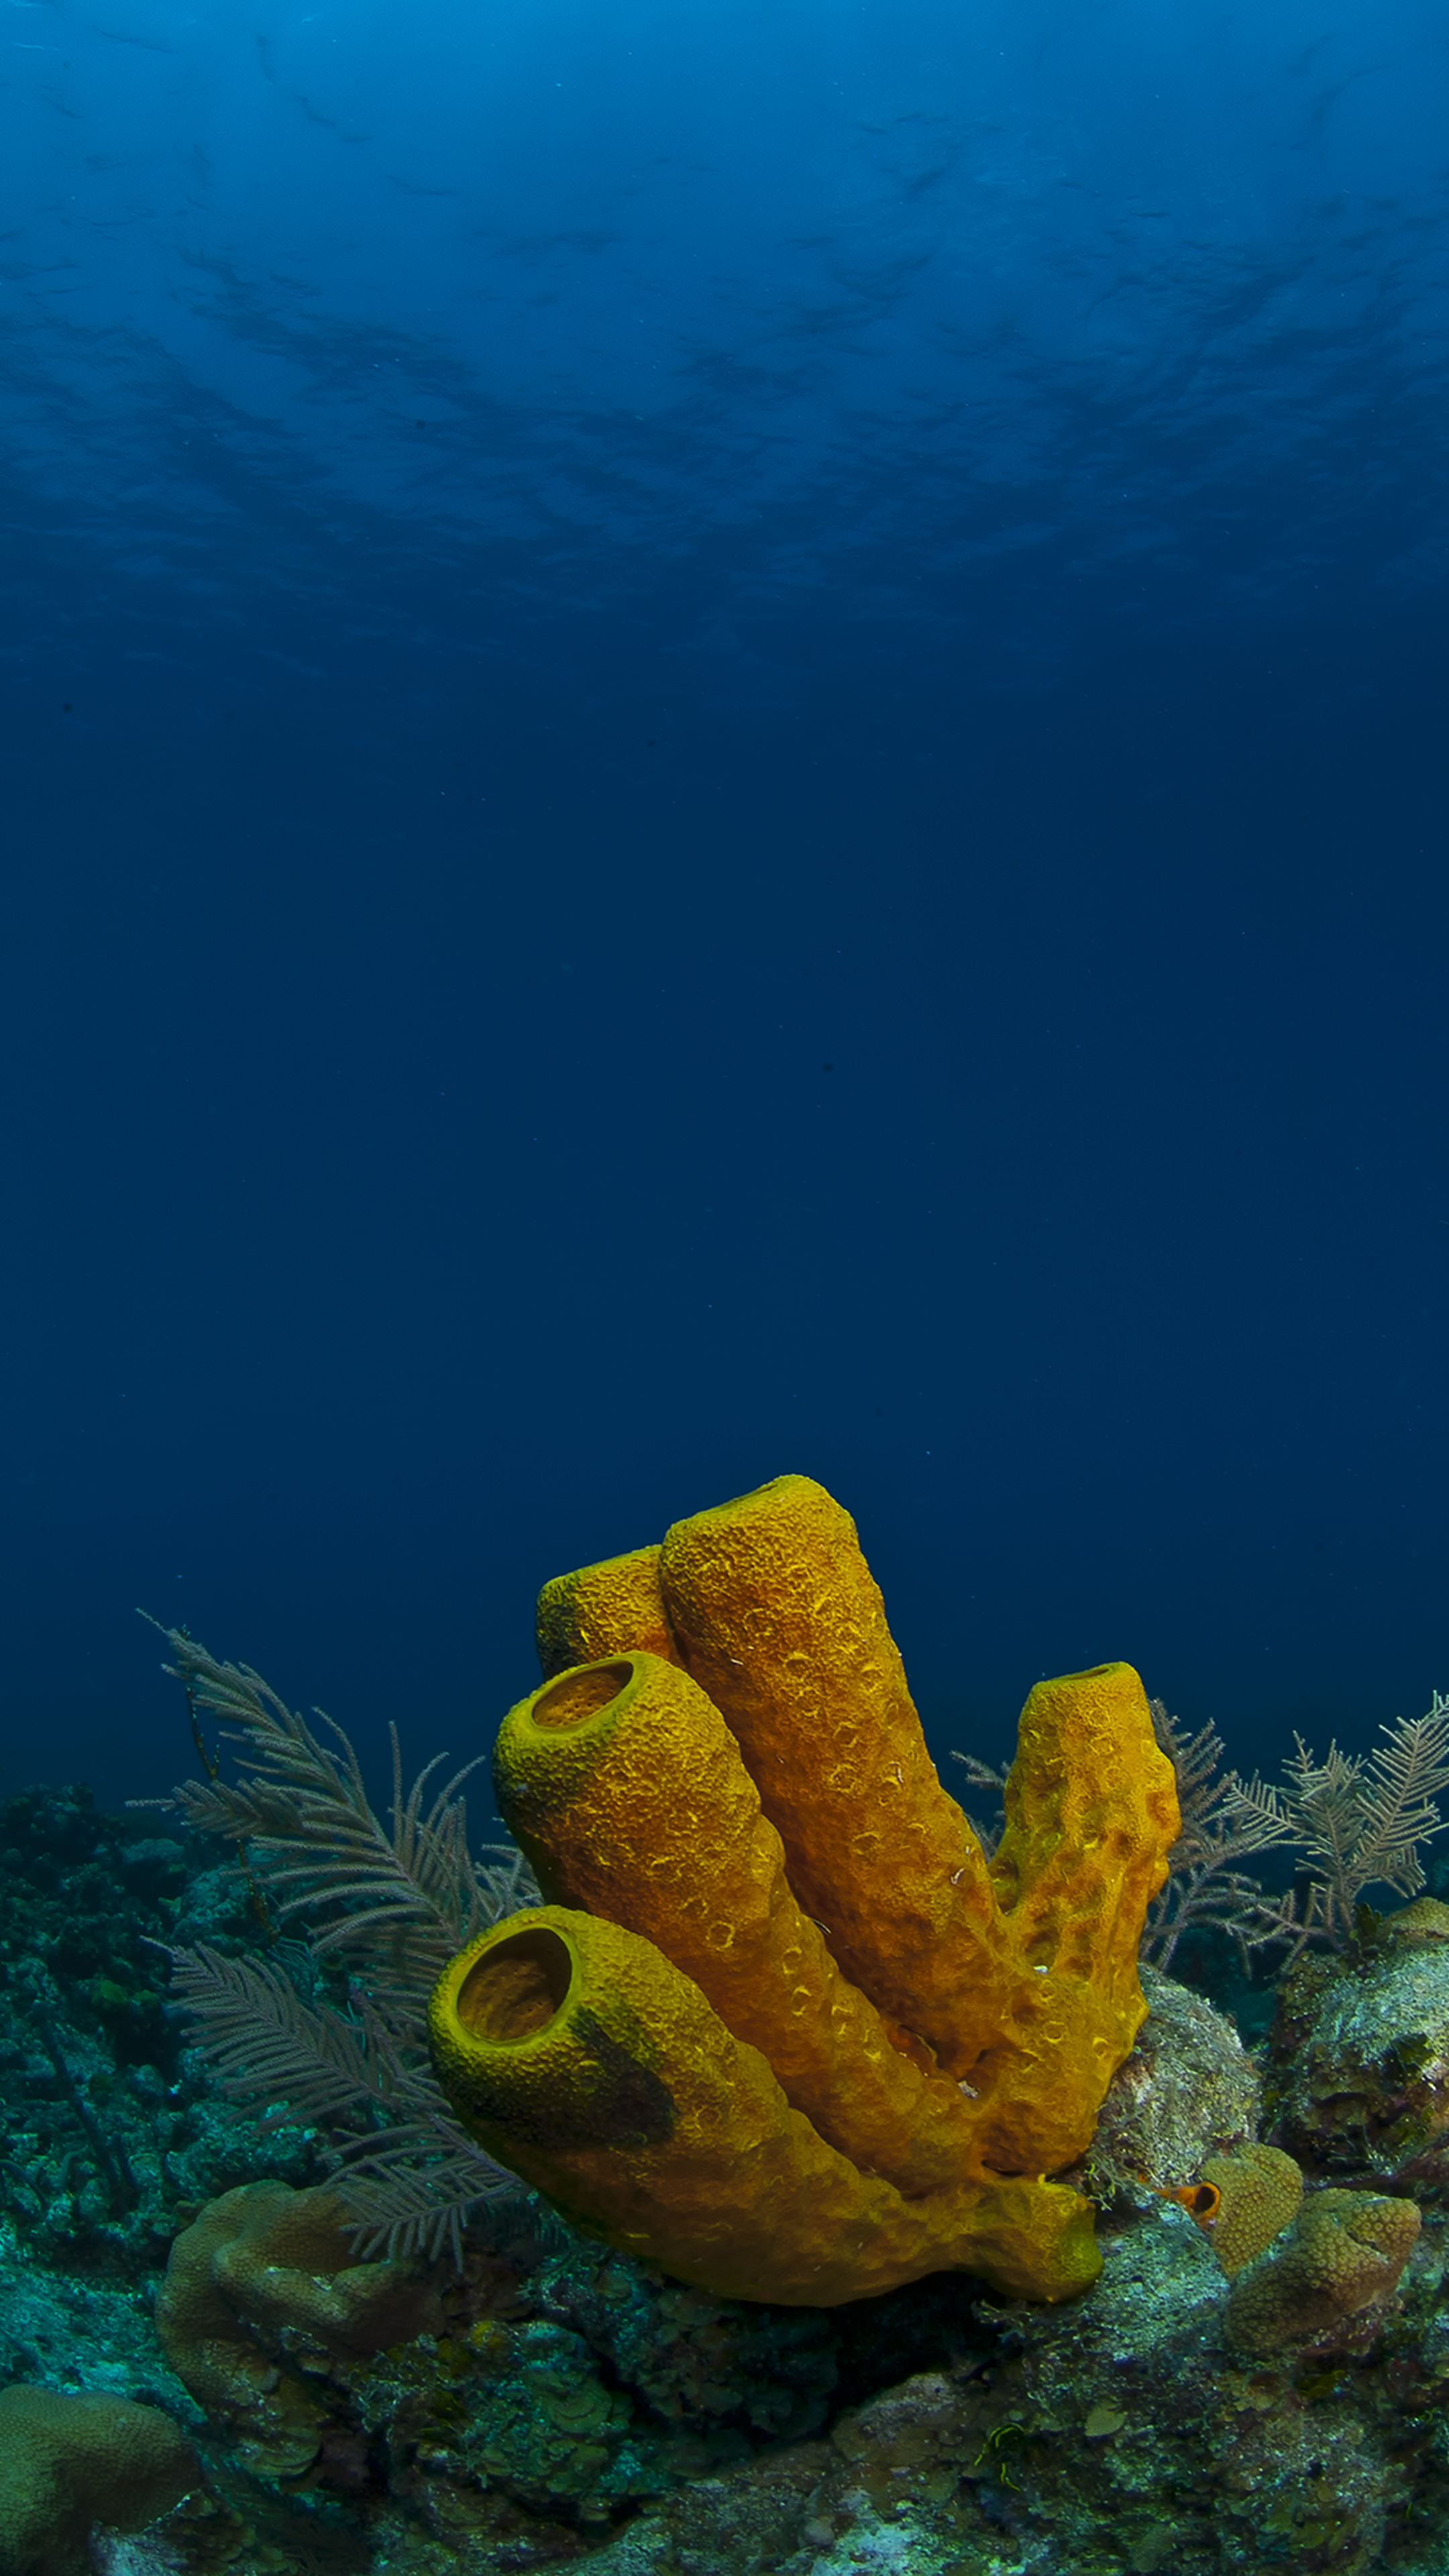 Sponge in Blue Water